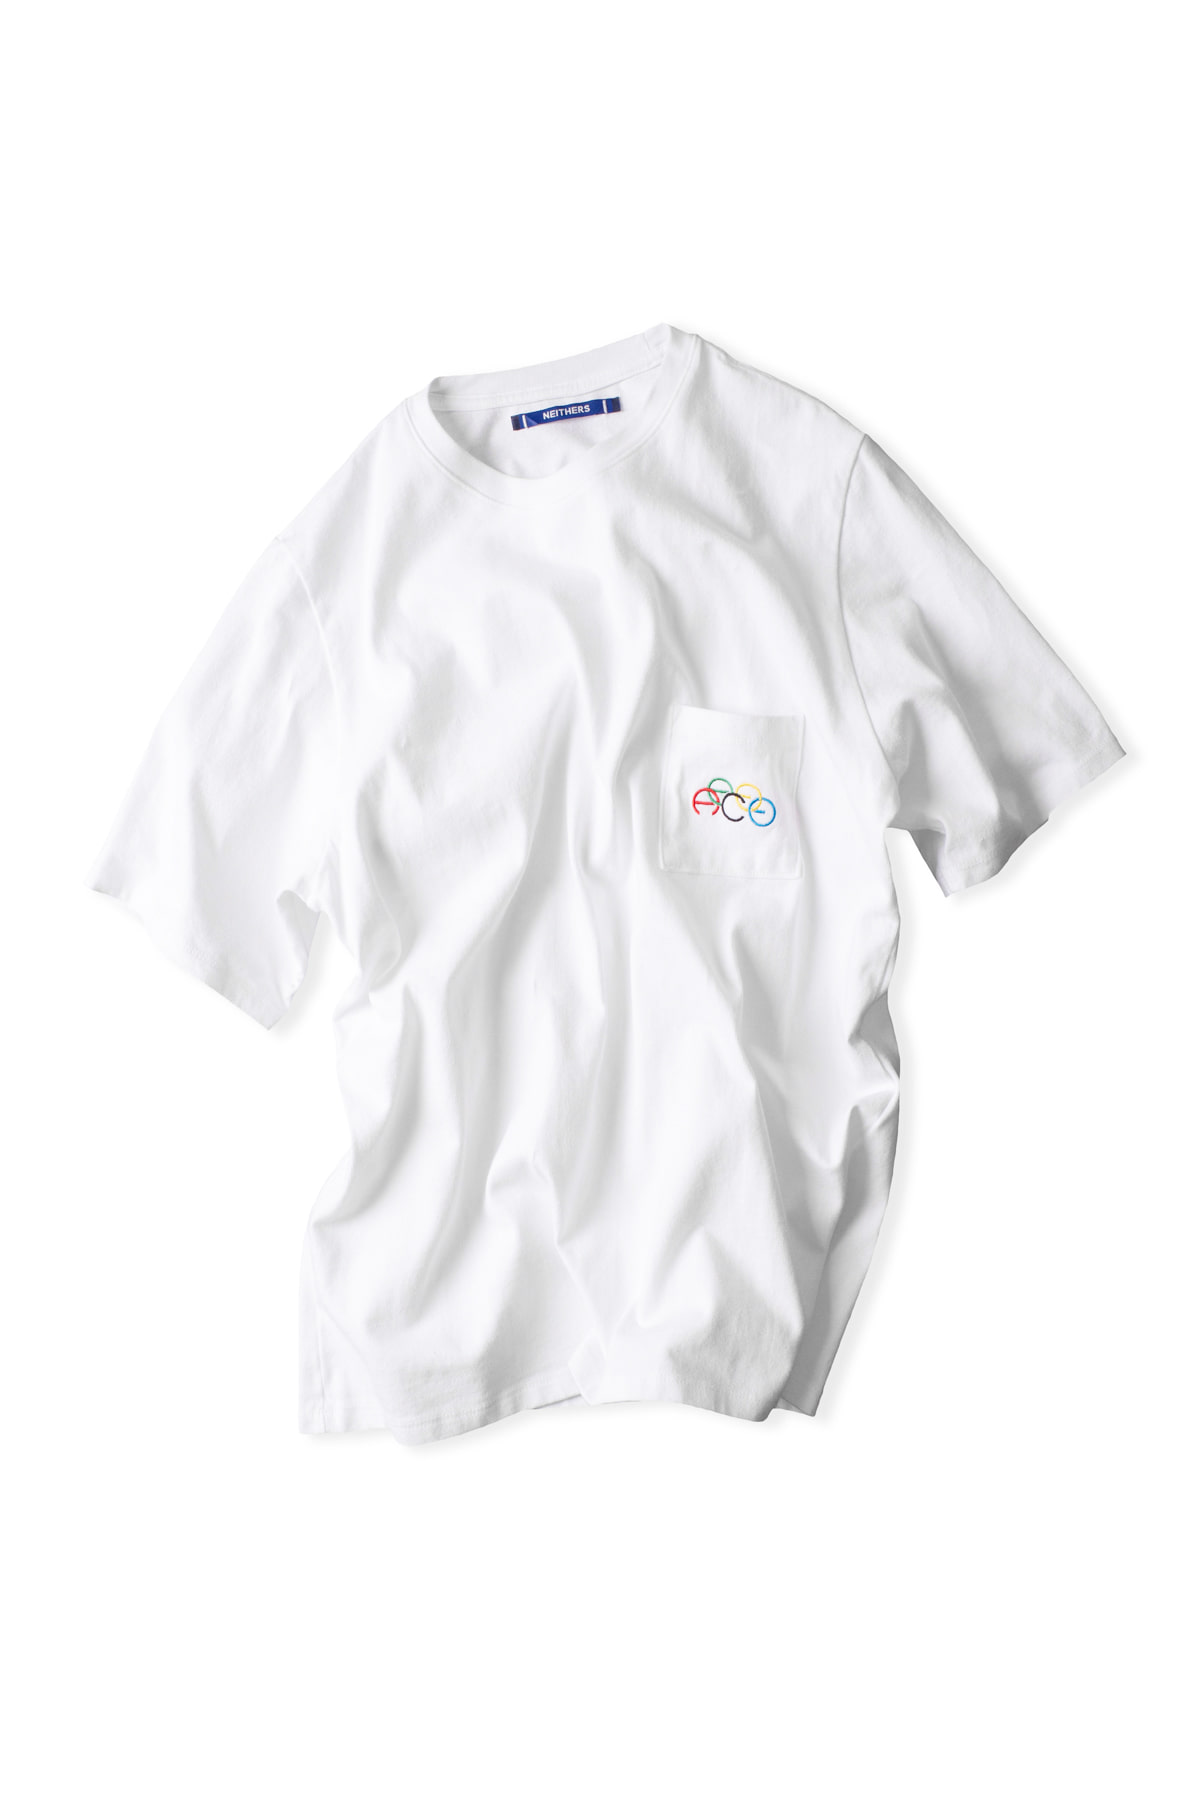 NEITHERS : 1-Pocket T-Shirt (White)